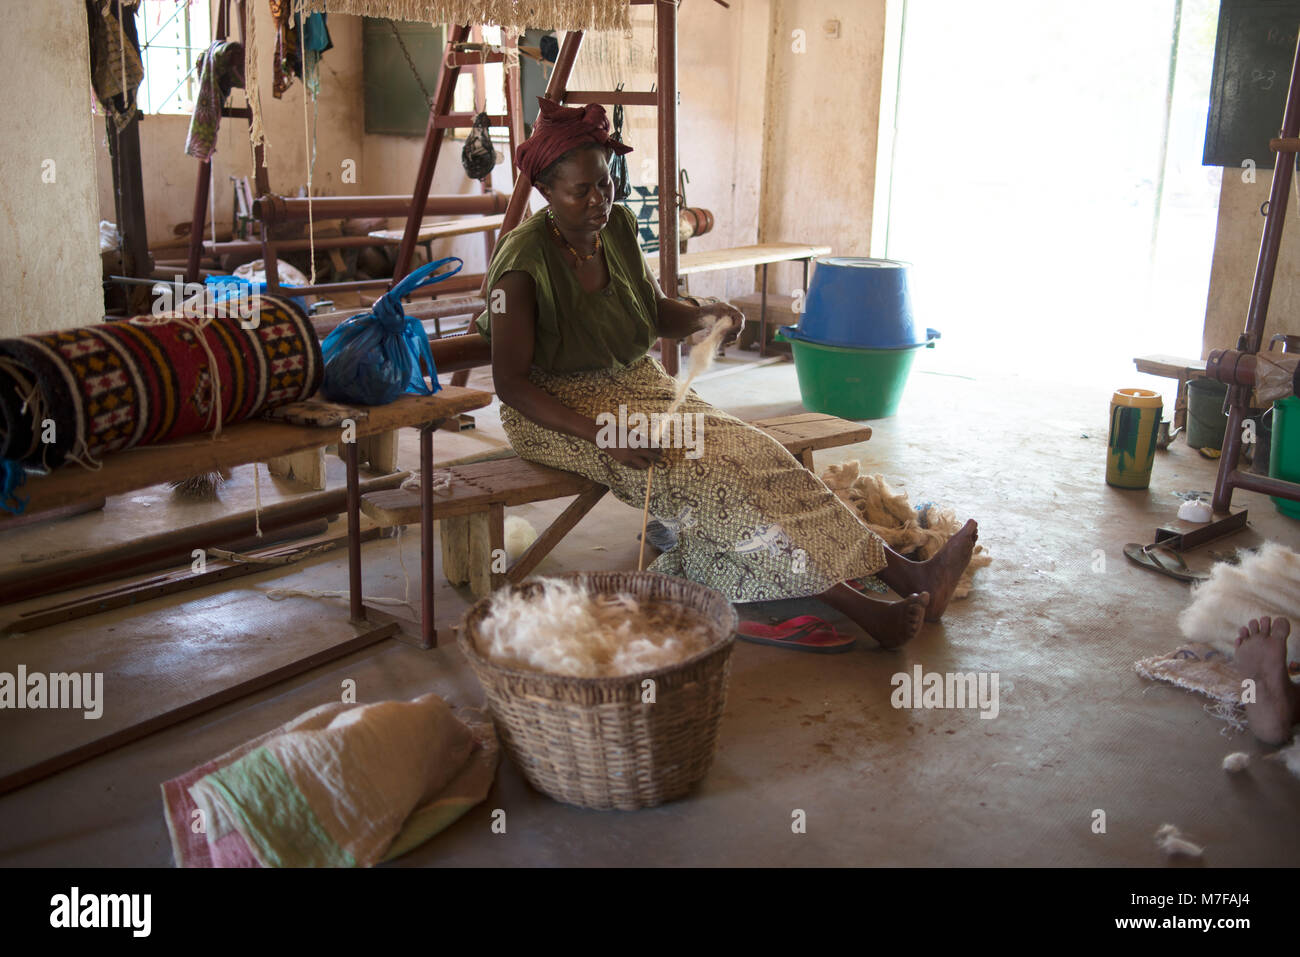 A woman spins wool that is used to make carpets. Segou, Mali, West Africa. - Stock Image